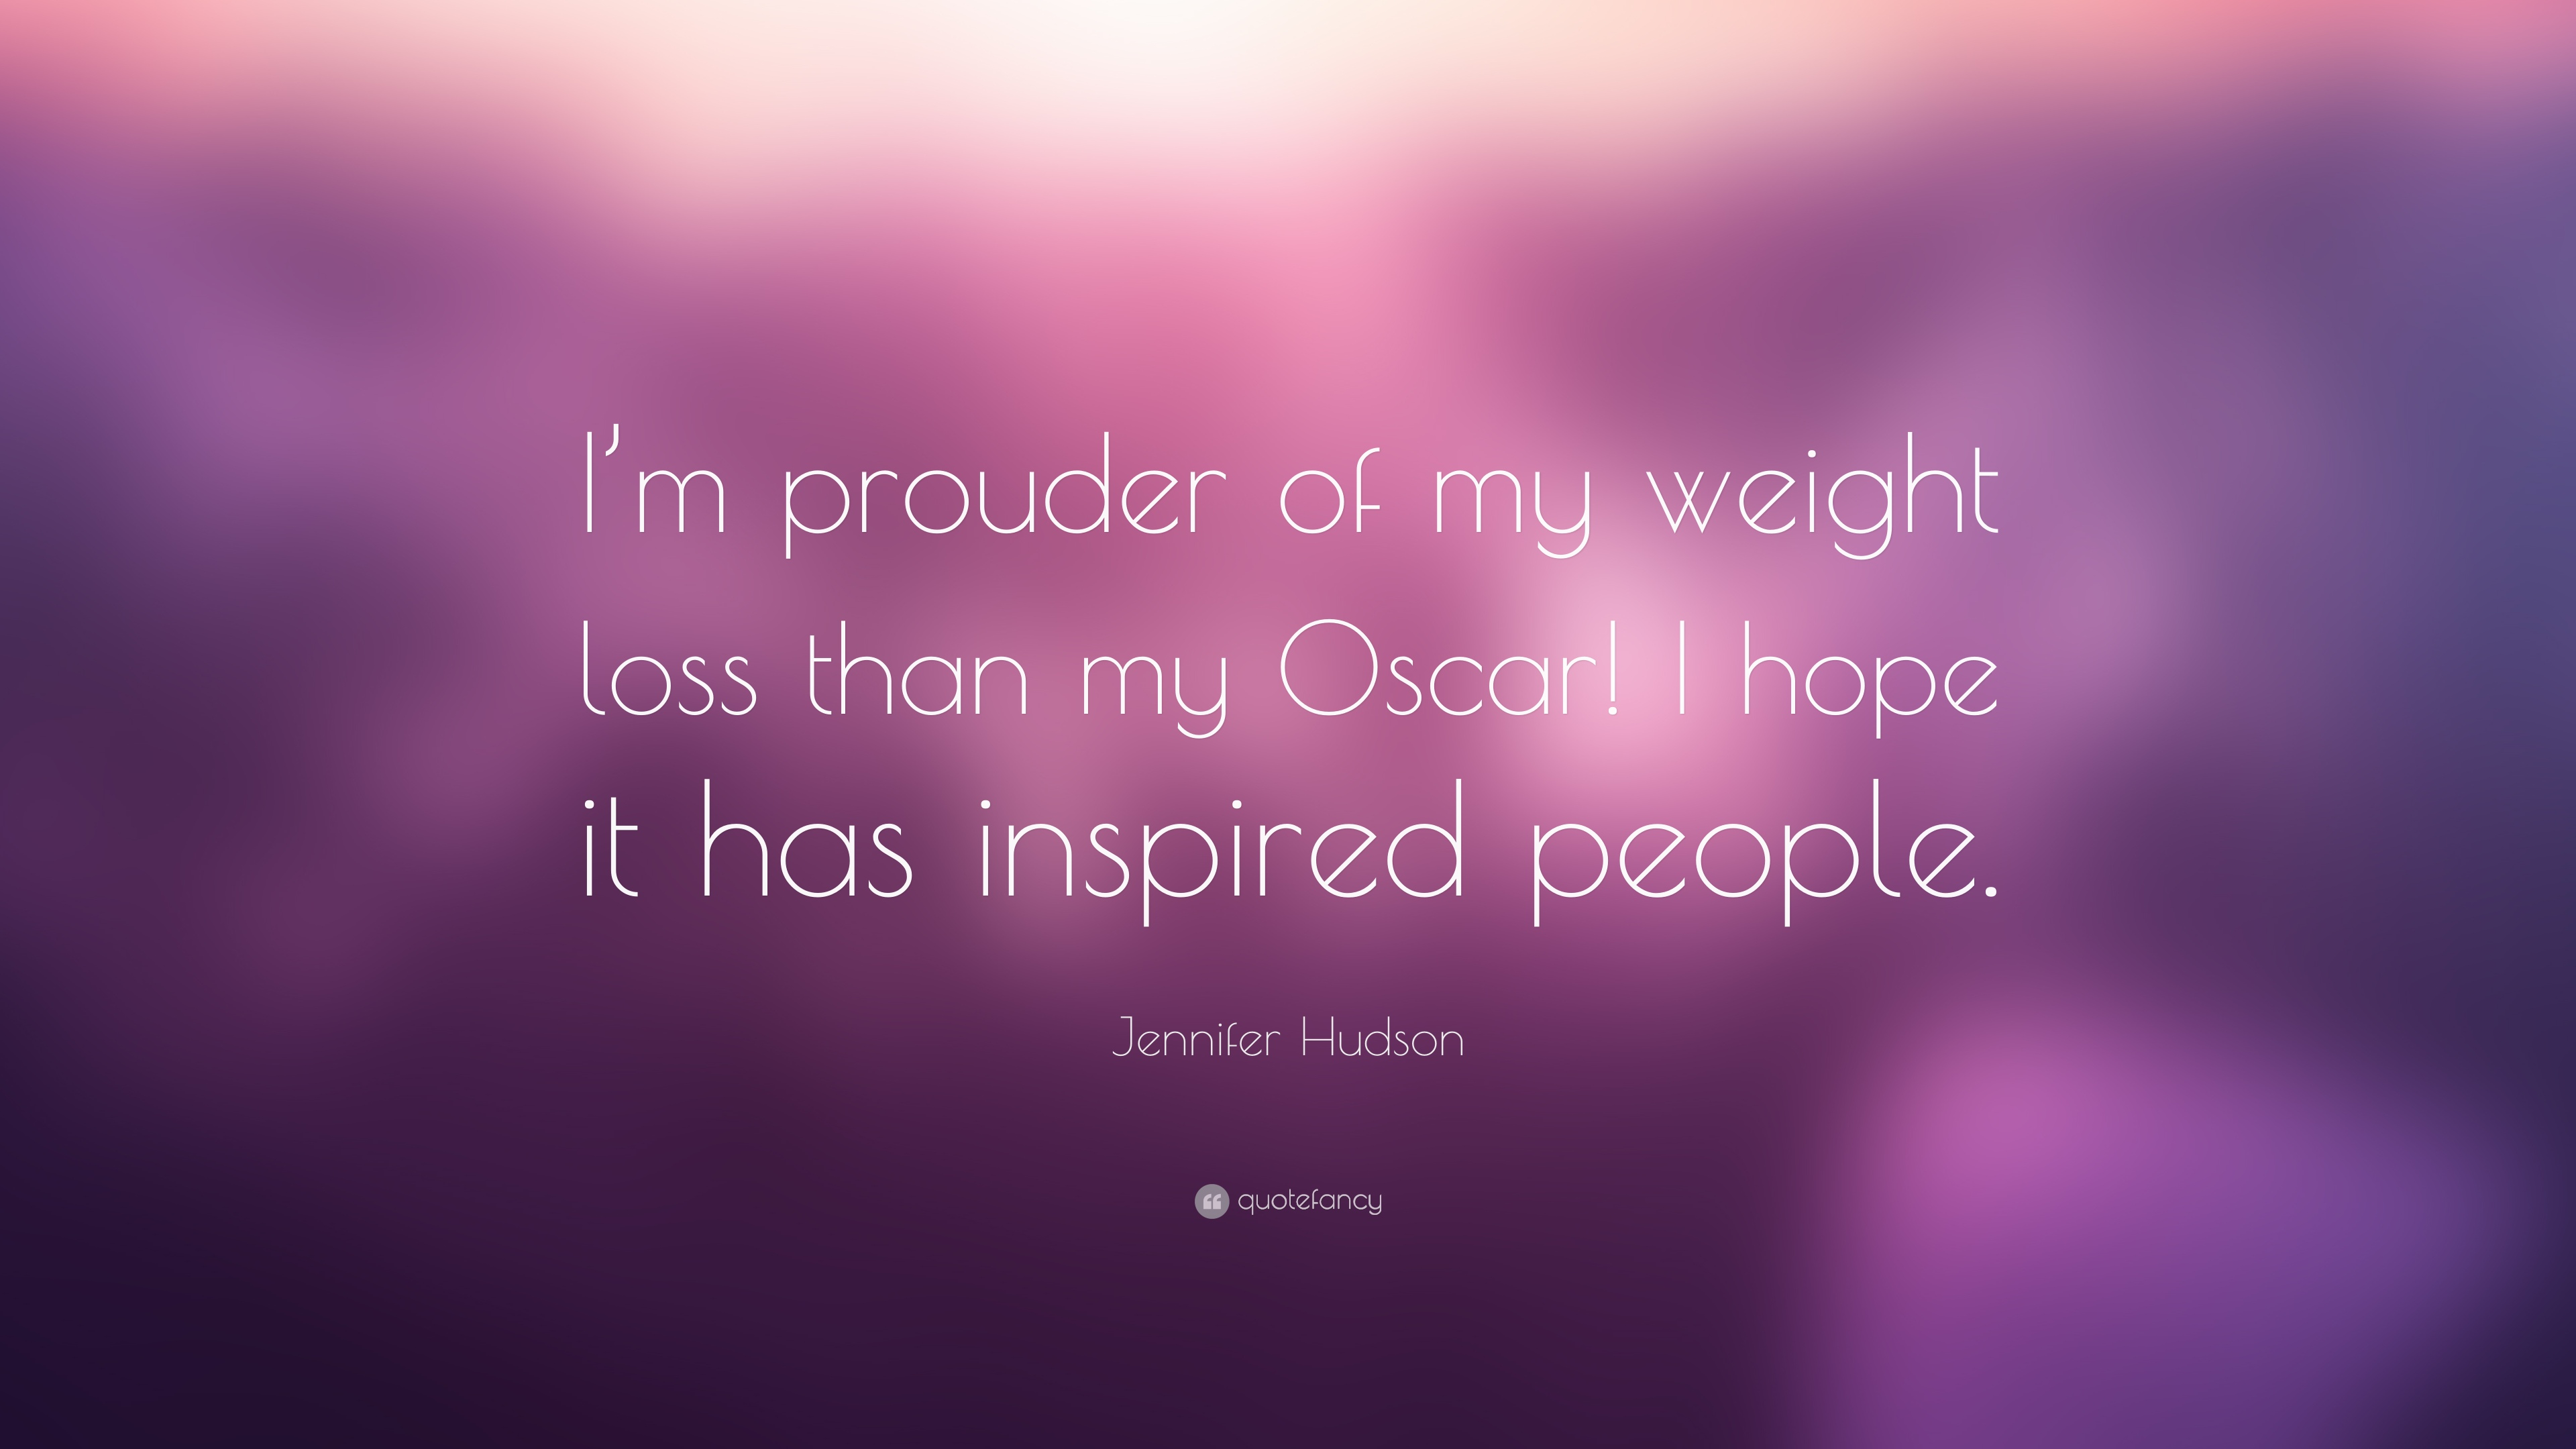 Jennifer Hudson Quote I M Prouder Of My Weight Loss Than My Oscar I Hope It Has Inspired People 7 Wallpapers Quotefancy